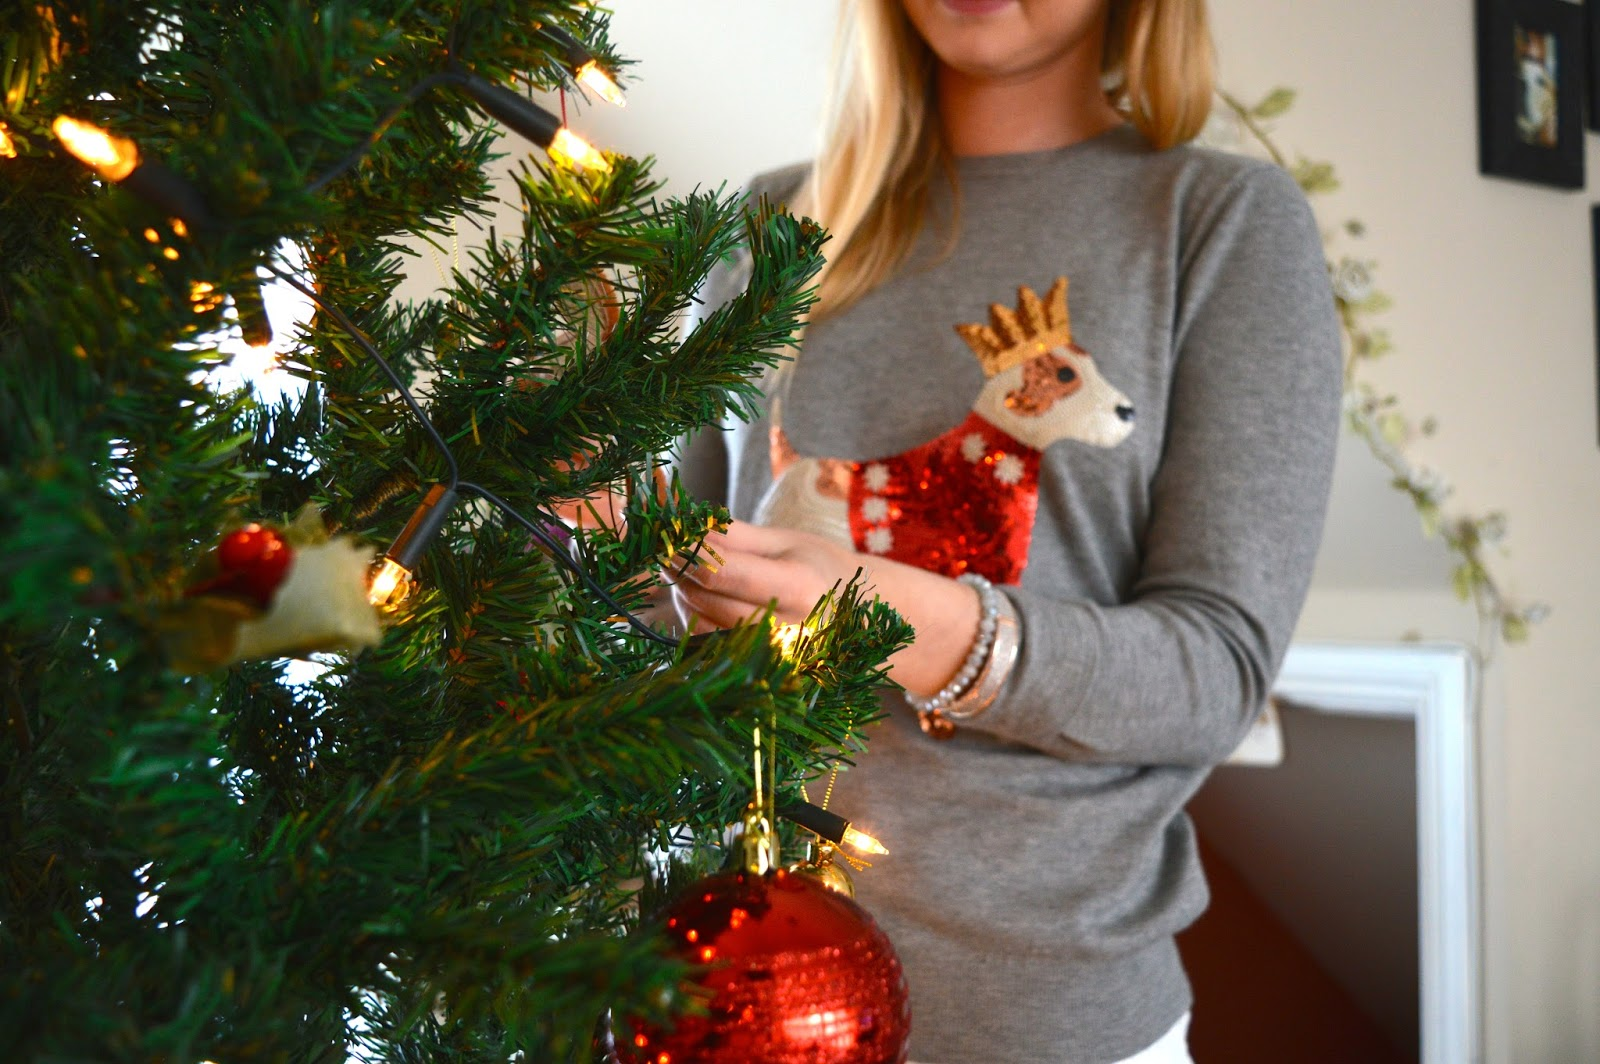 Matalan Christmas Jumper, how to wear a Christmas jumper, fashion bloggers, fashion blog, lifestyle bloggers, lifestyle blog, Christmas blog